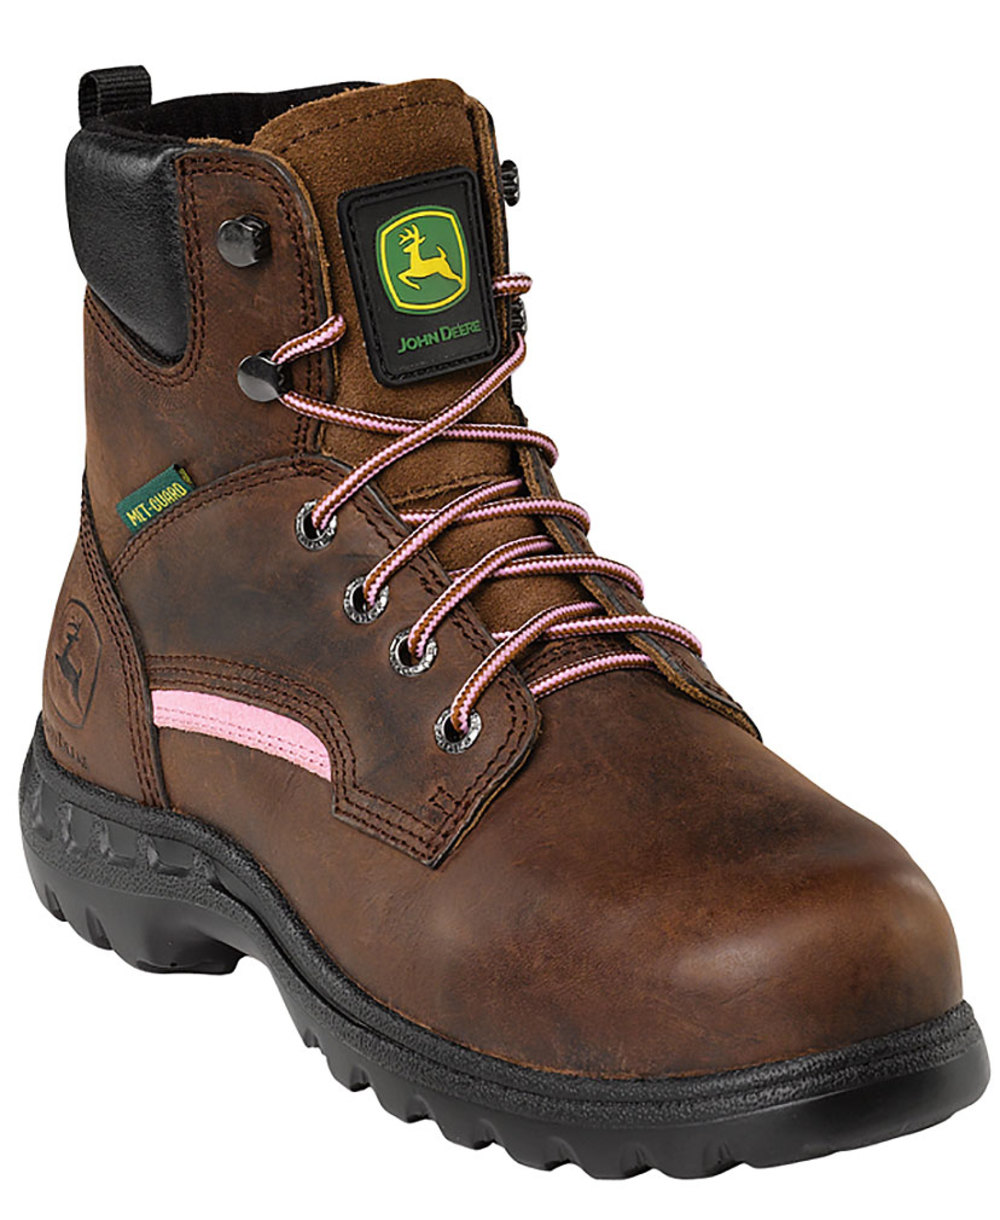 Women's STEEL TOE Brown Work Boot 8.5 M